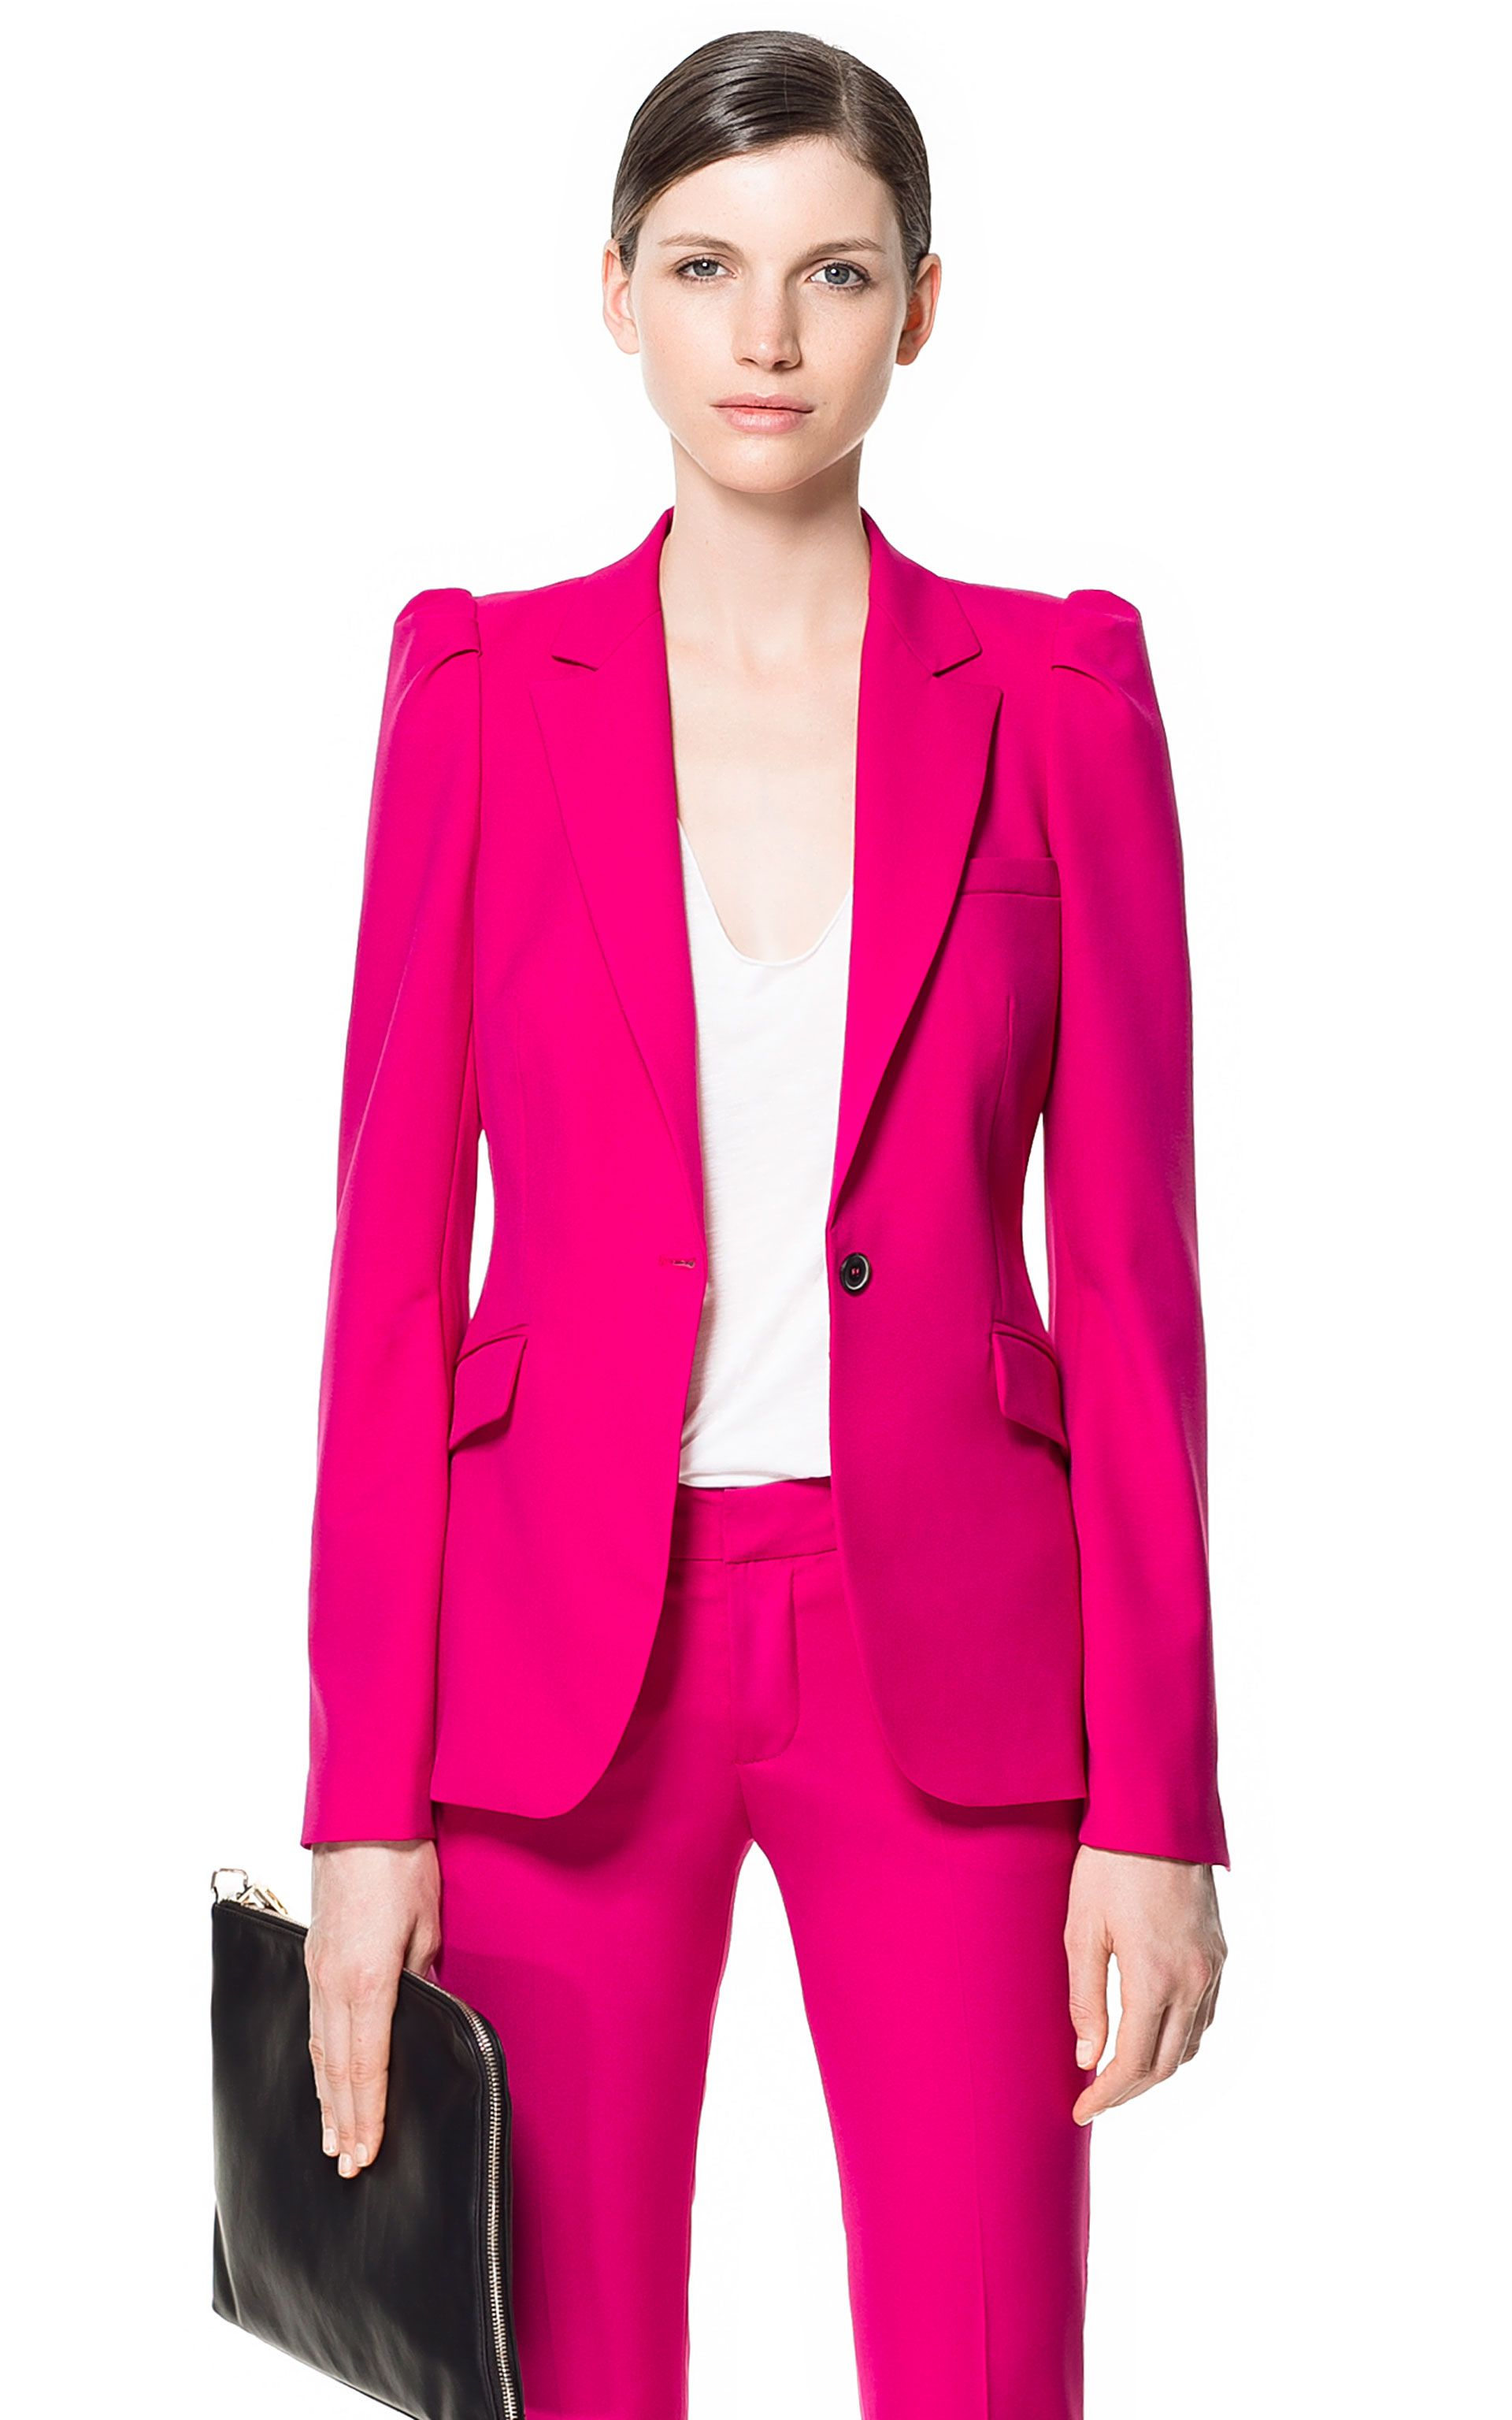 Blue Pink Ladies Blazer Jackets Work Wear 2019 Fashion Casual Long Sleeve Blasers Lady One Button Office Suit Outwear Female Refreshing And Beneficial To The Eyes Back To Search Resultswomen's Clothing Suits & Sets